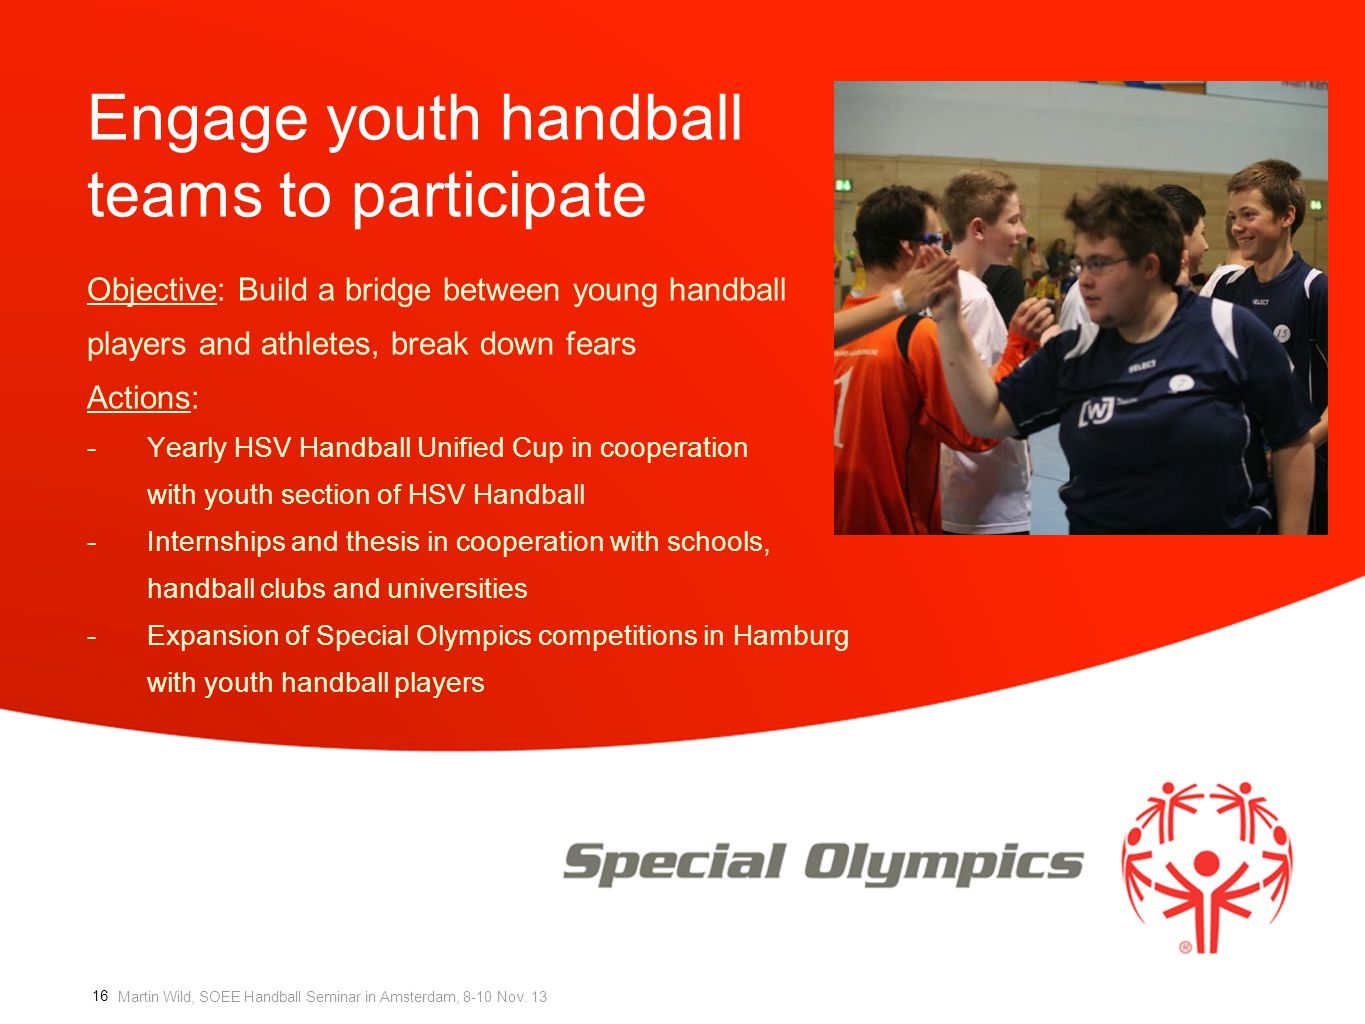 Engage youth handball teams to participate